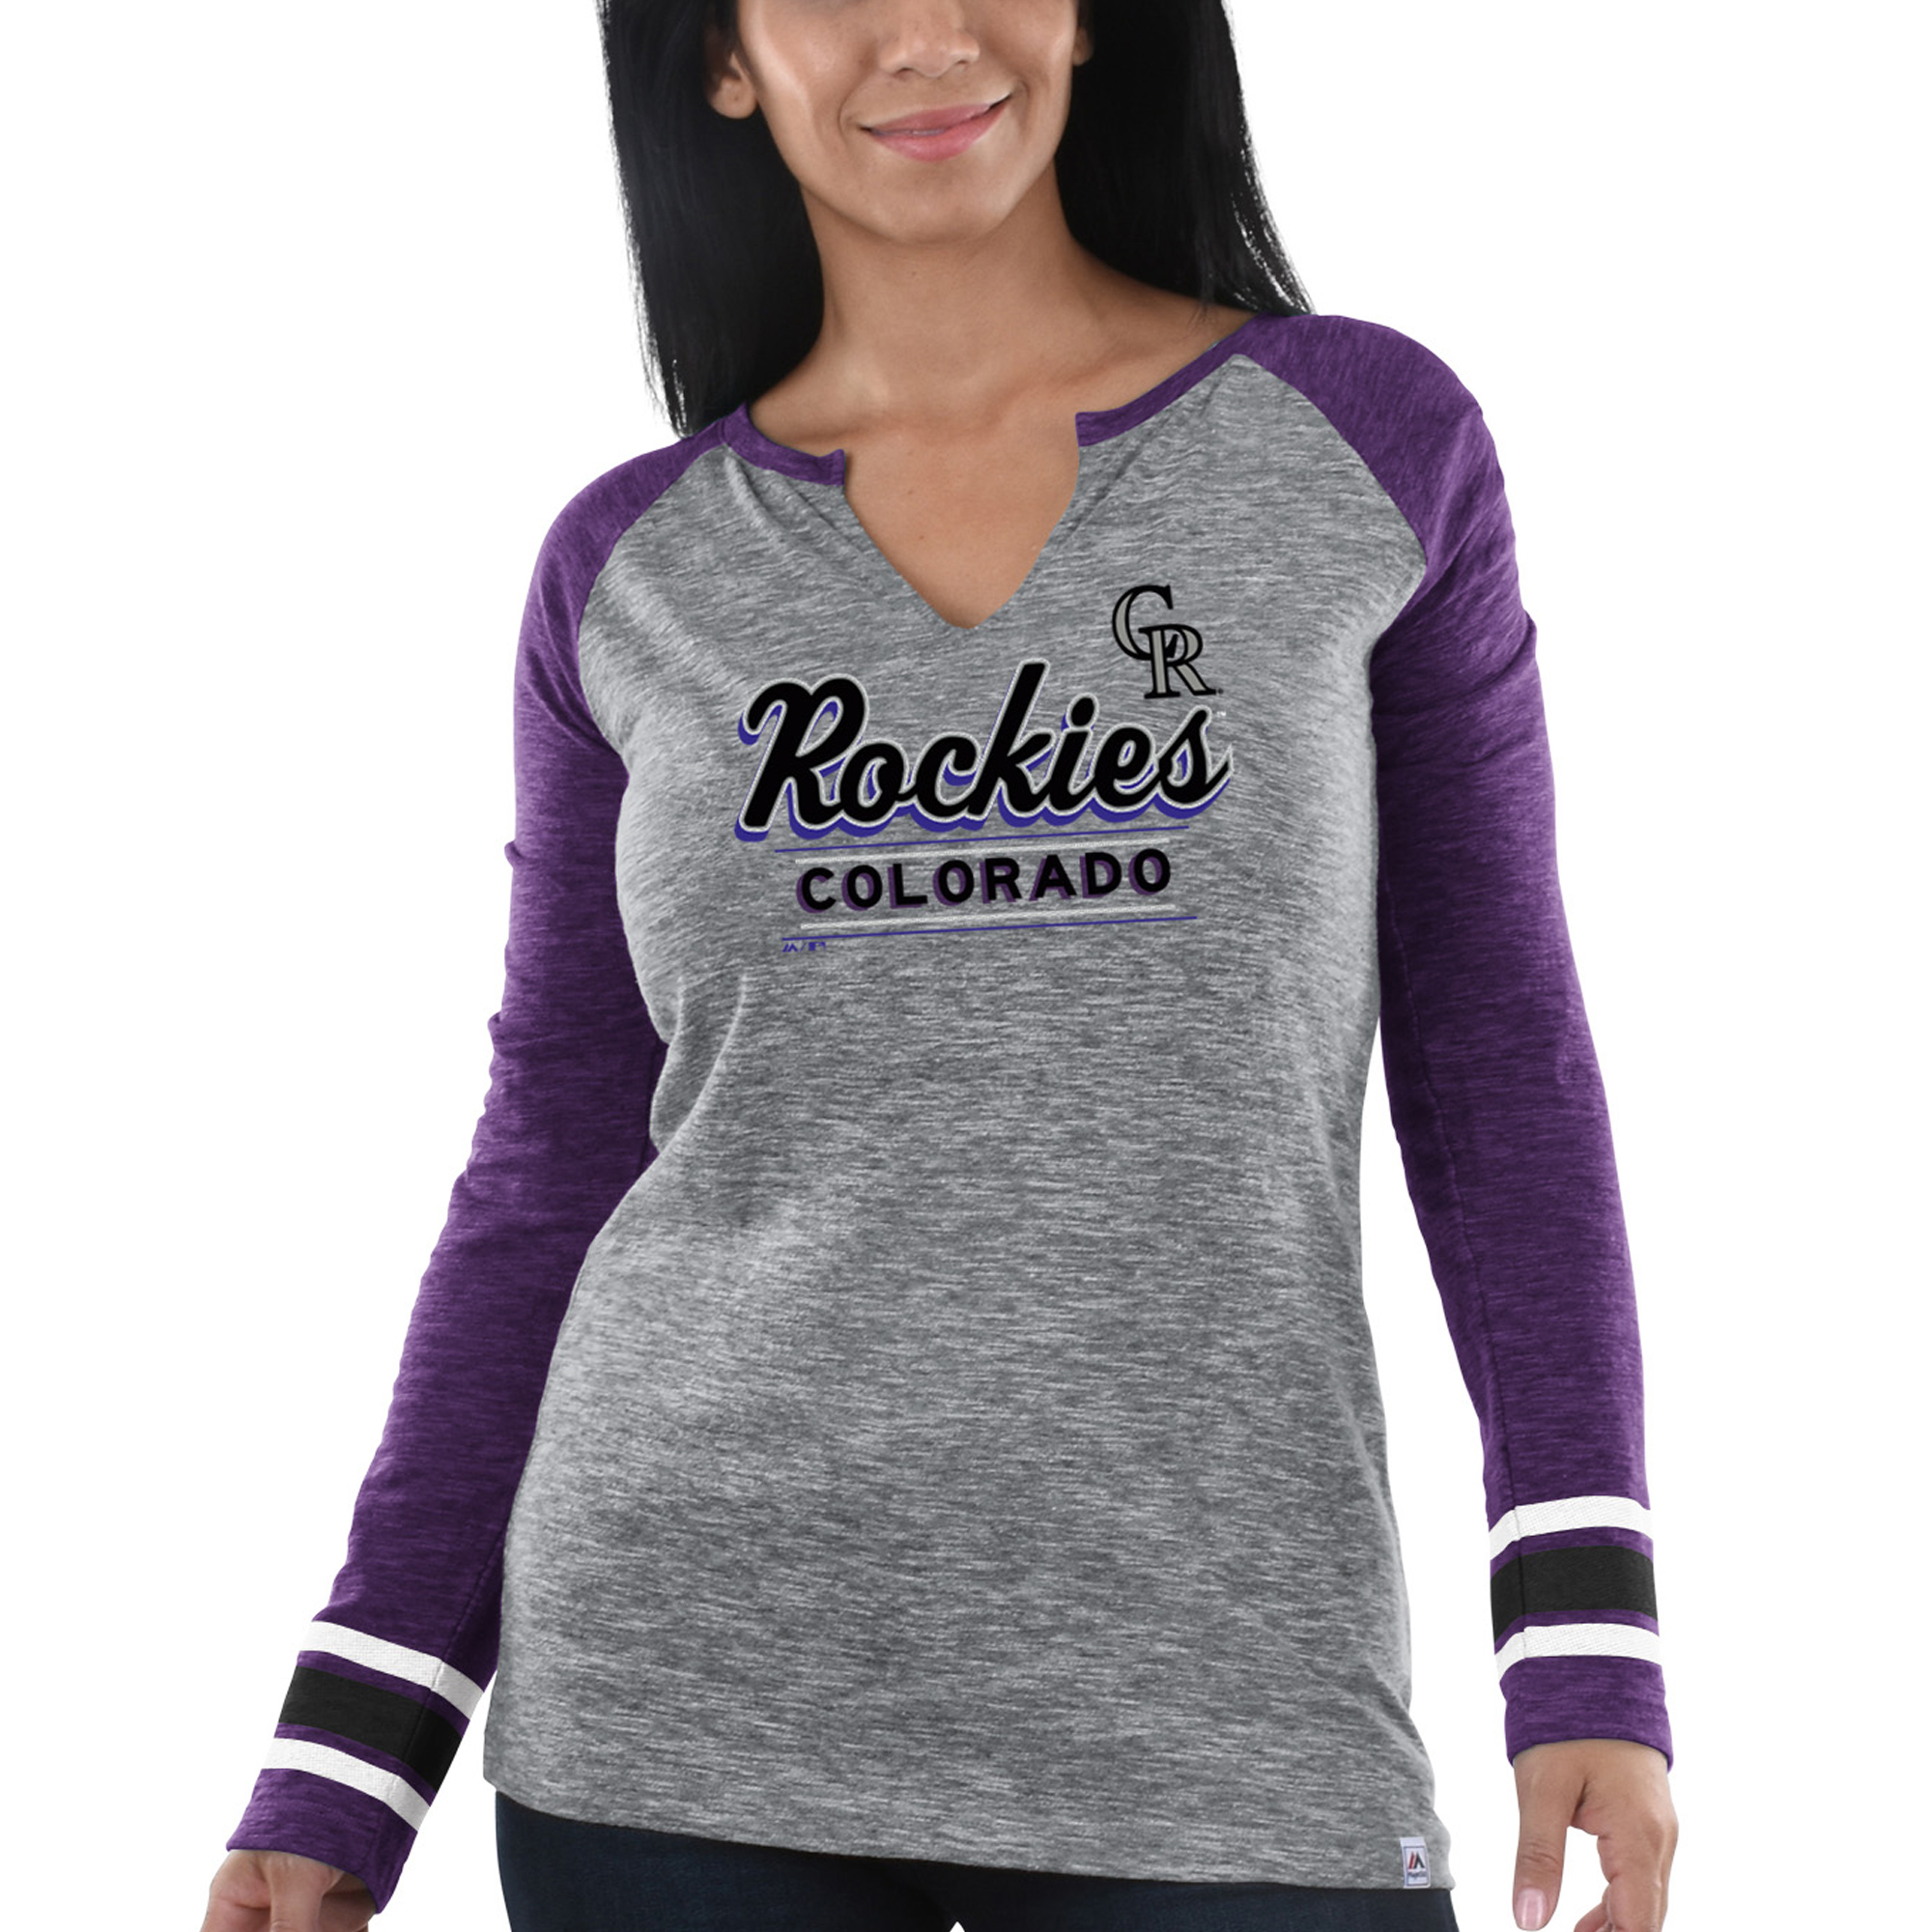 Women's Majestic Heathered Gray/Purple Colorado Rockies Time's Running Out Long Sleeve T-Shirt